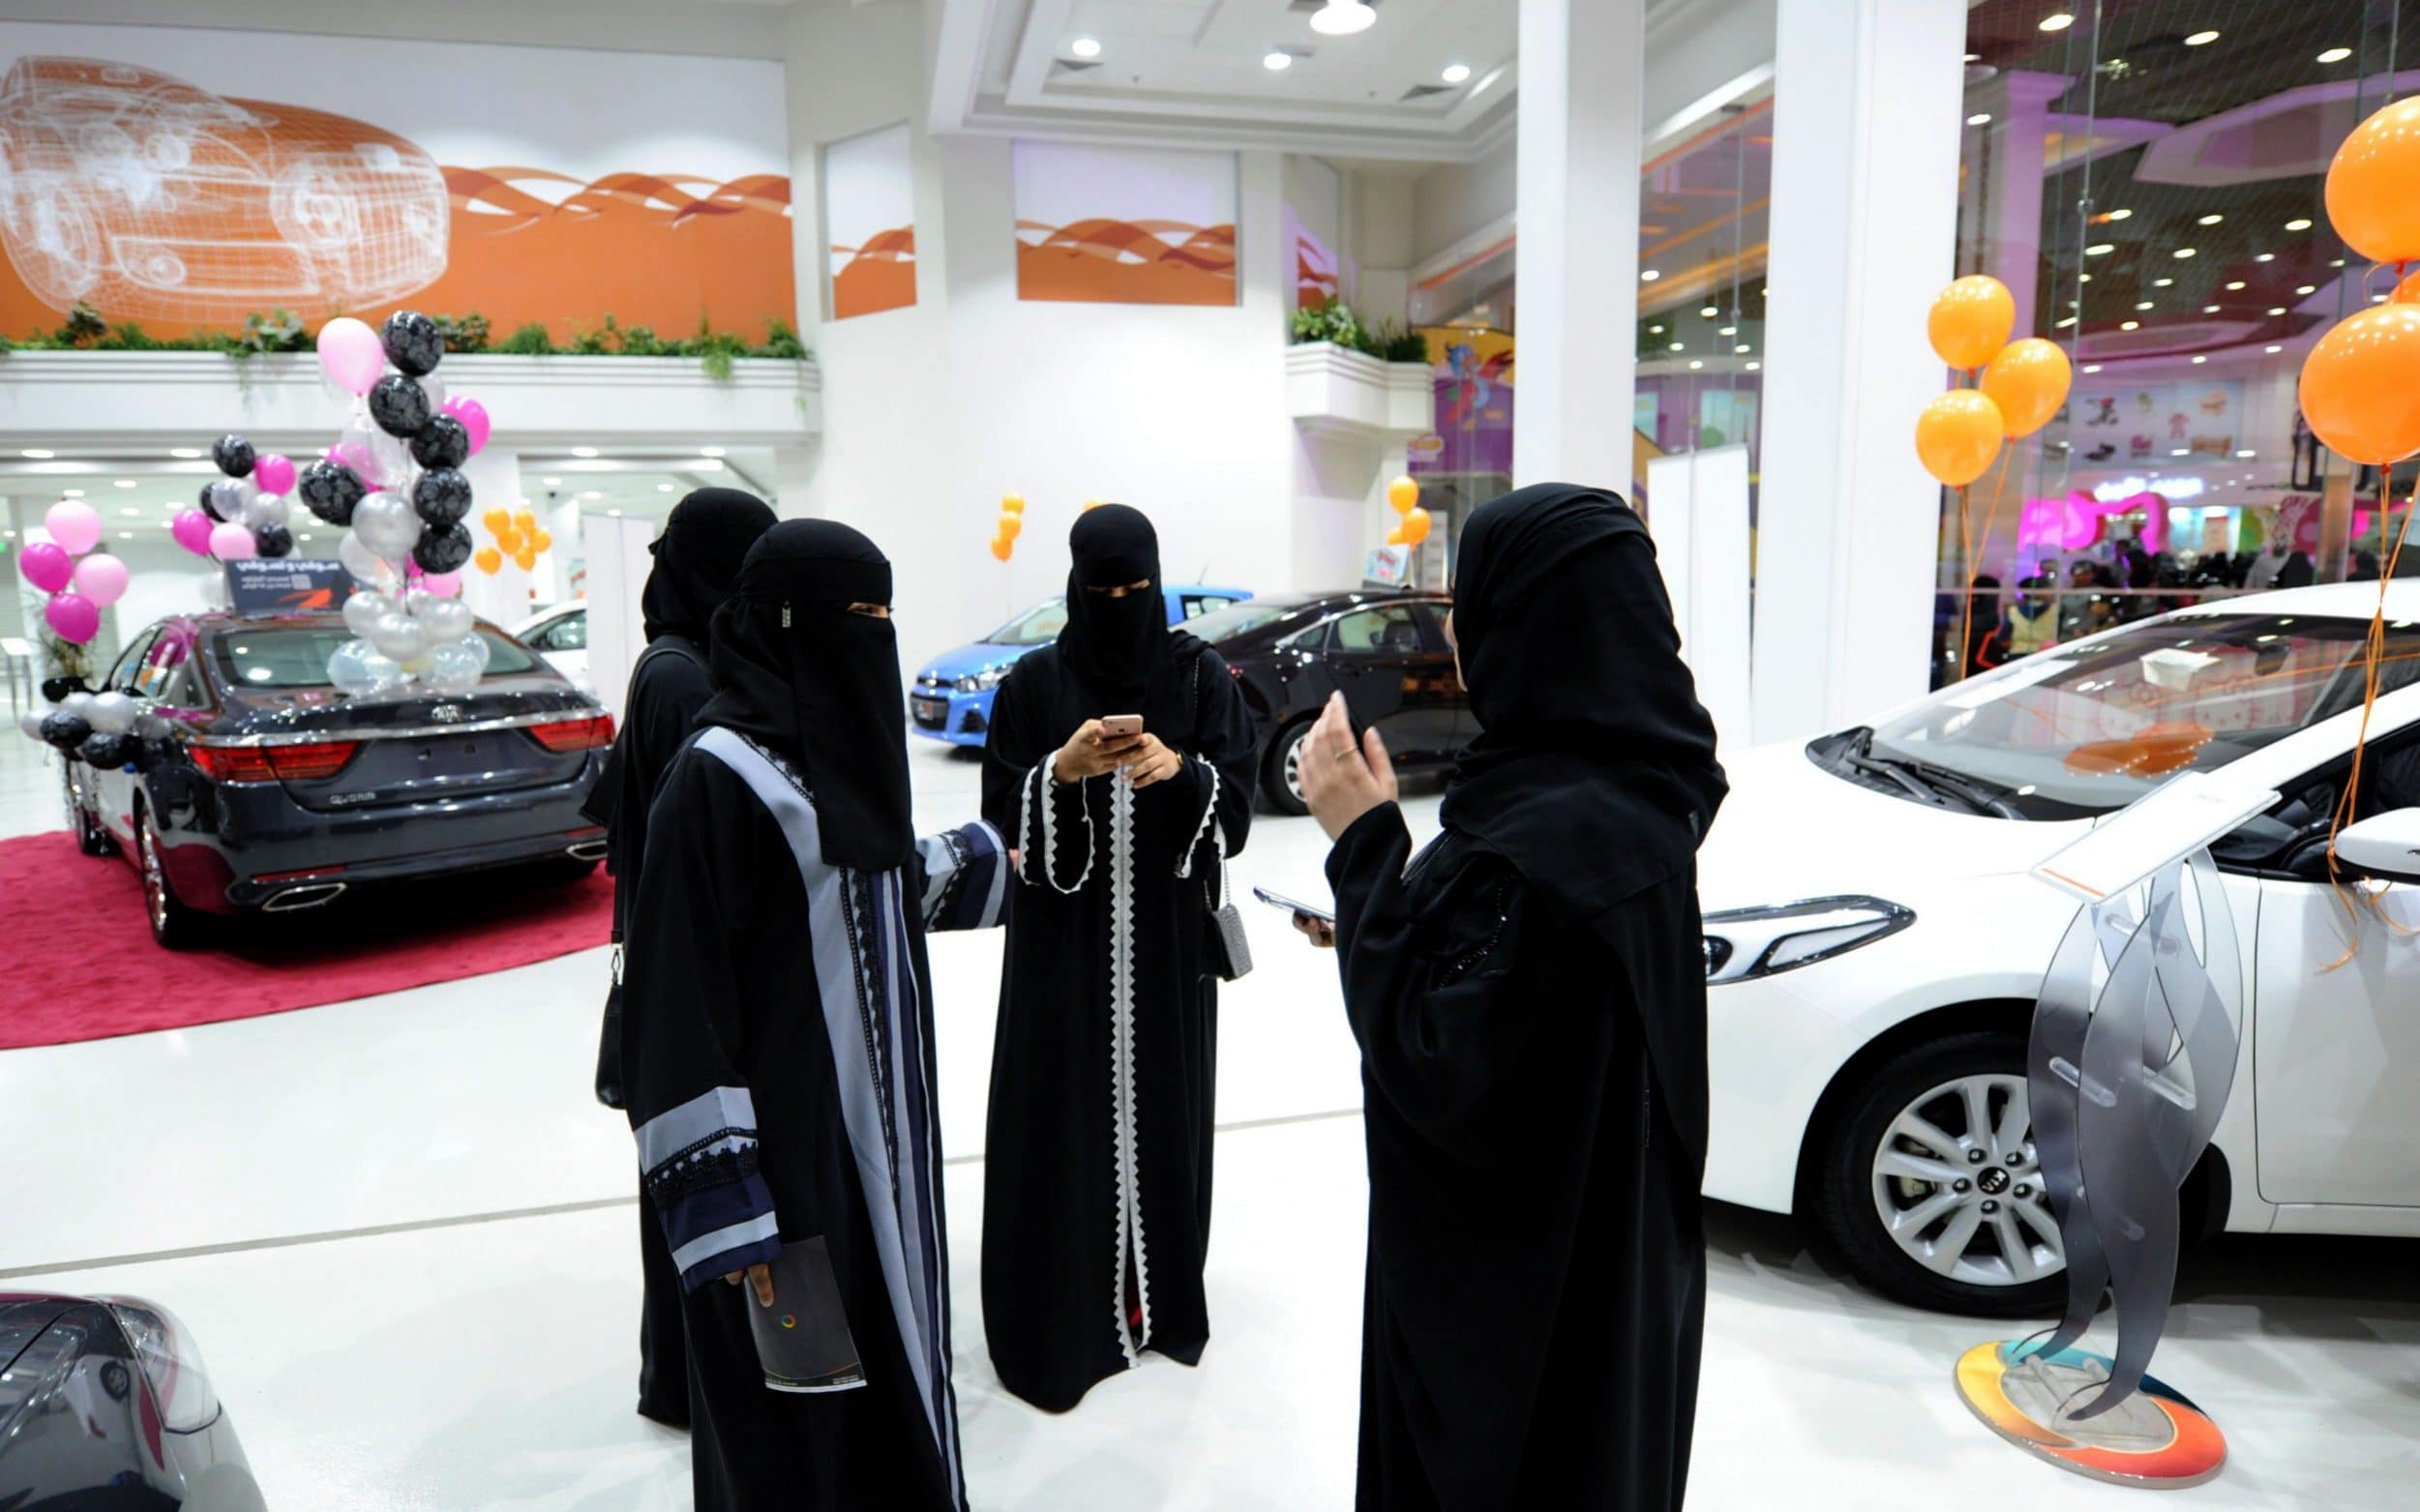 Saudi Arabia to ease male guardianship law restricting womens travel